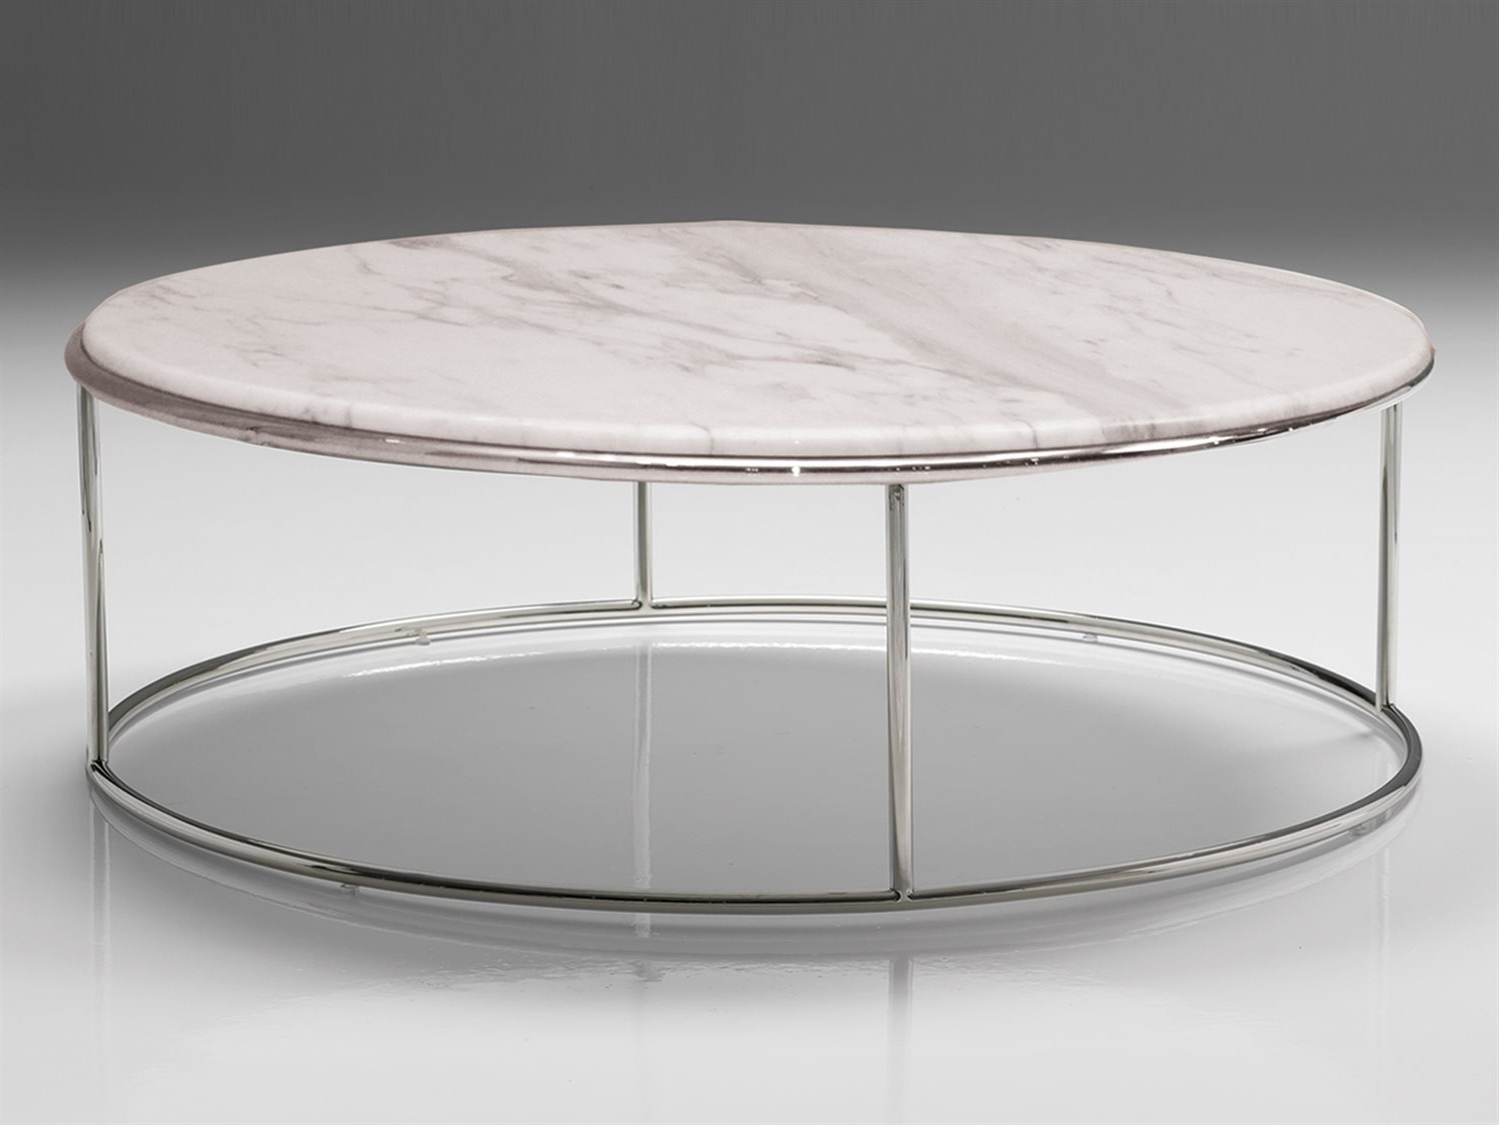 Most Recently Released Smart Round Marble Top Coffee Tables Intended For Decoration In Marble Round Coffee Table With Coffee Table Smart (View 16 of 20)